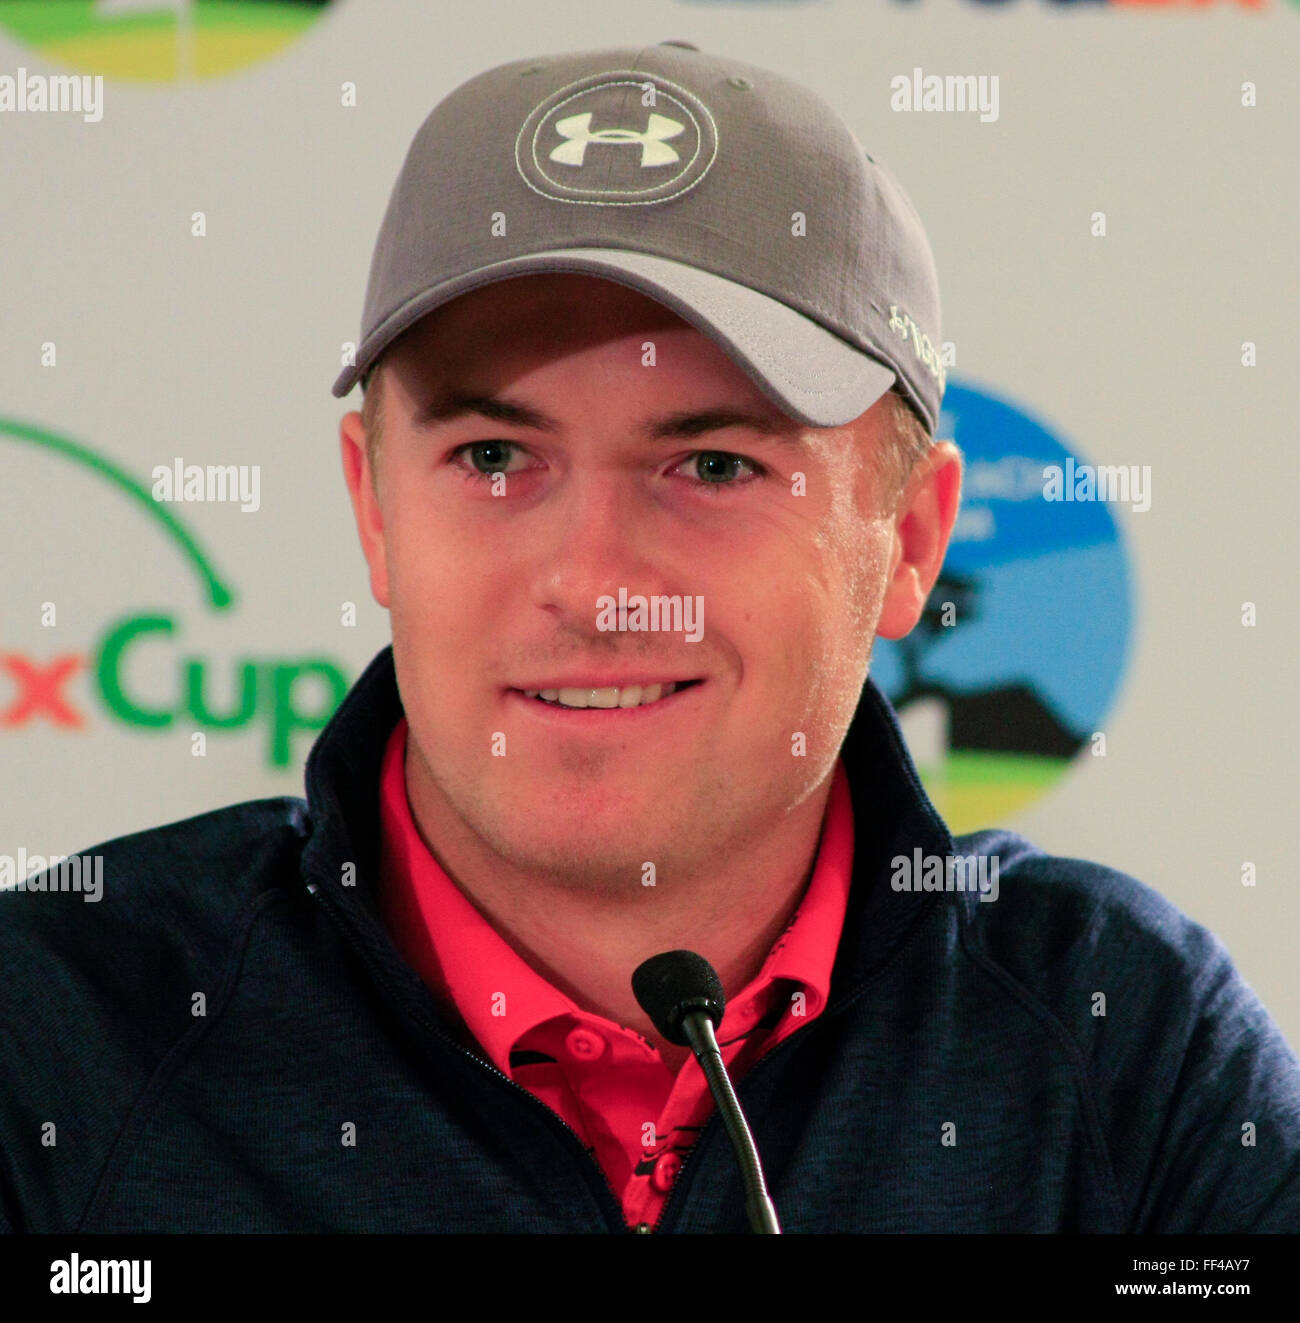 Jordan Spieth, (Texas) the World No.1 golfer talks with the press at the AT&T Pro-Am PGA Tour golf event at - Stock Image